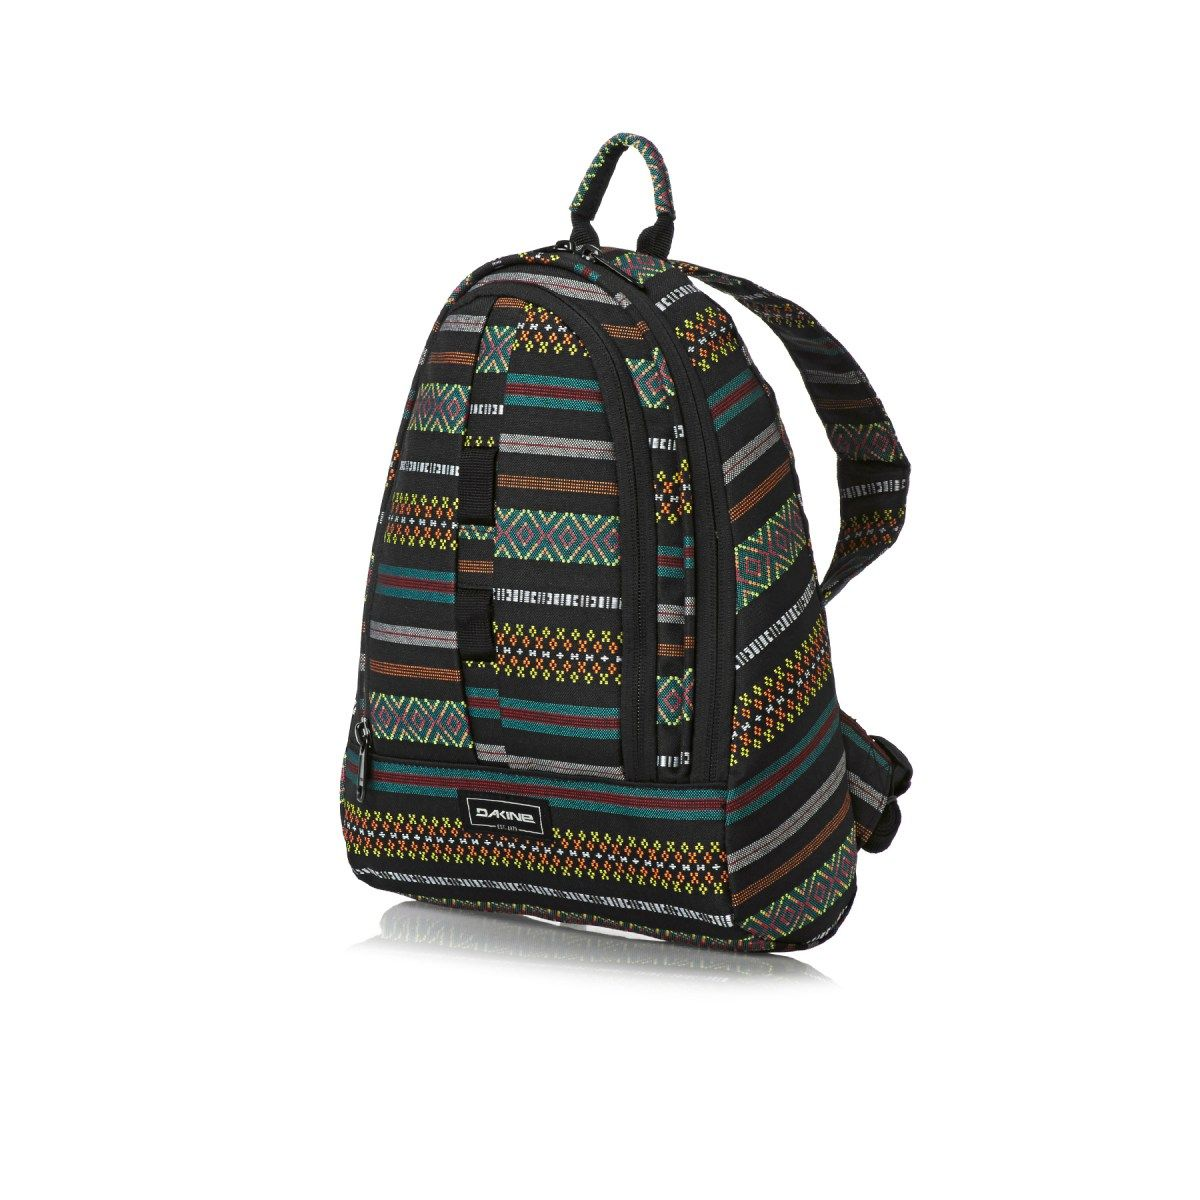 bb6f7453c470 Women s Dakine Backpacks - Dakine Cosmo 6.5l Backpack - Dakota ...